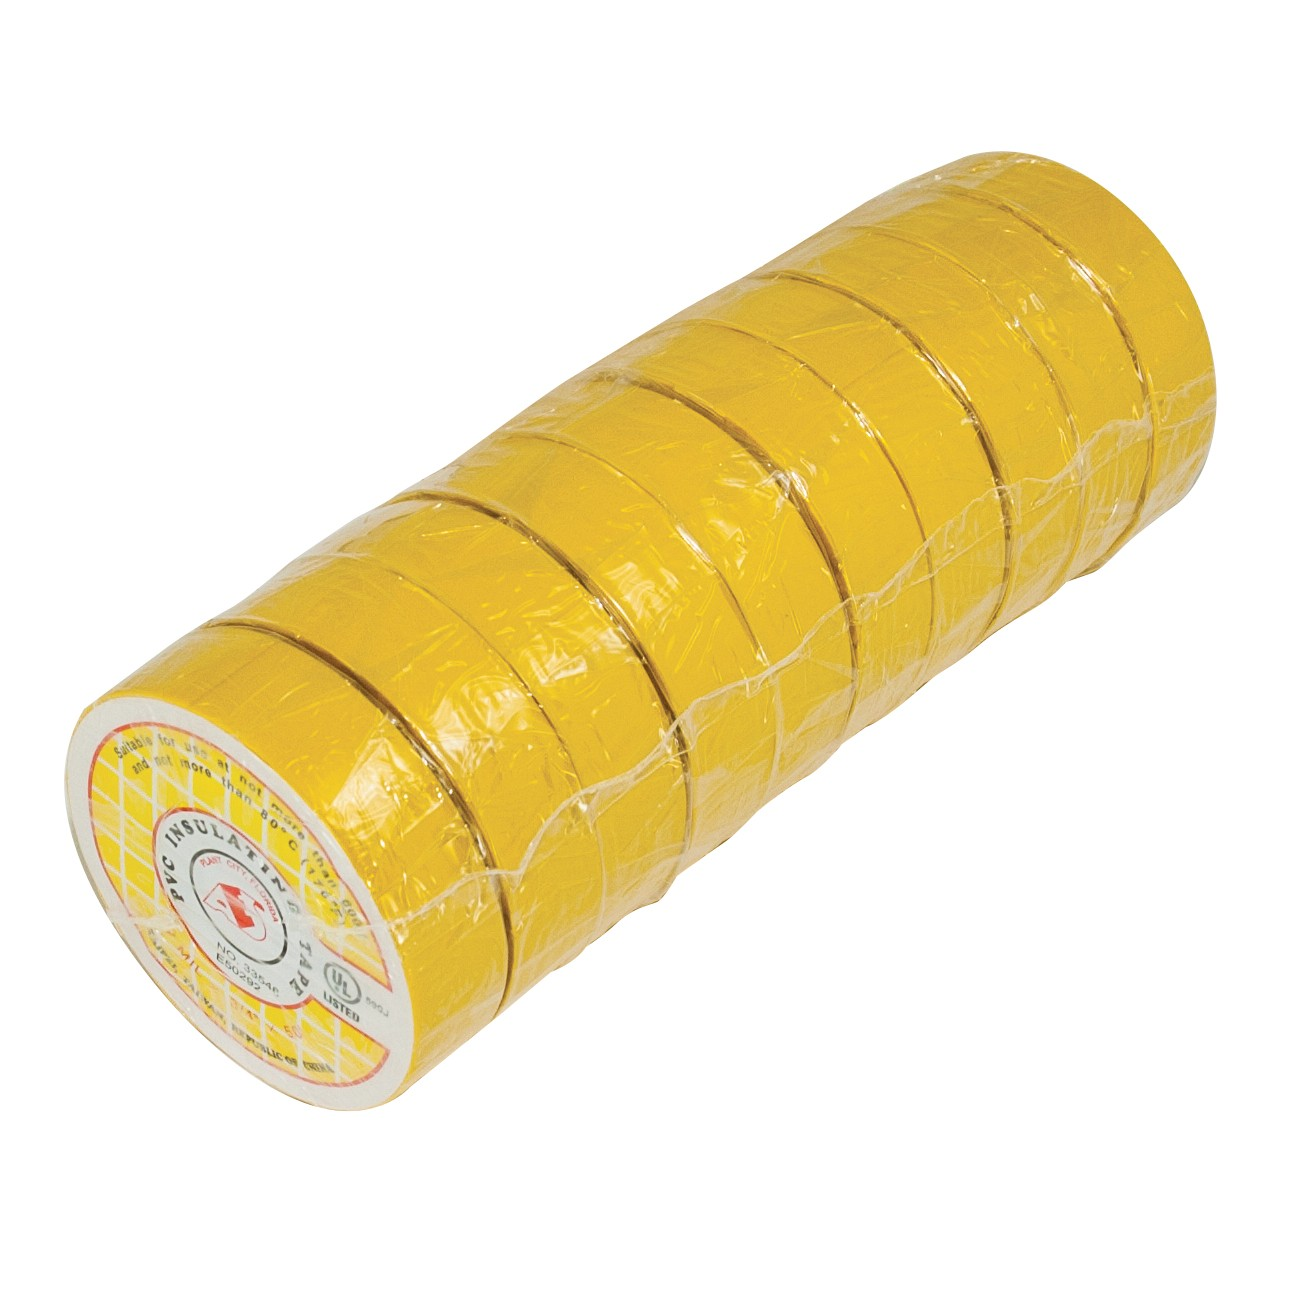 "50ft 3/4"" Electrical Tape - Yellow (10 Rolls)"